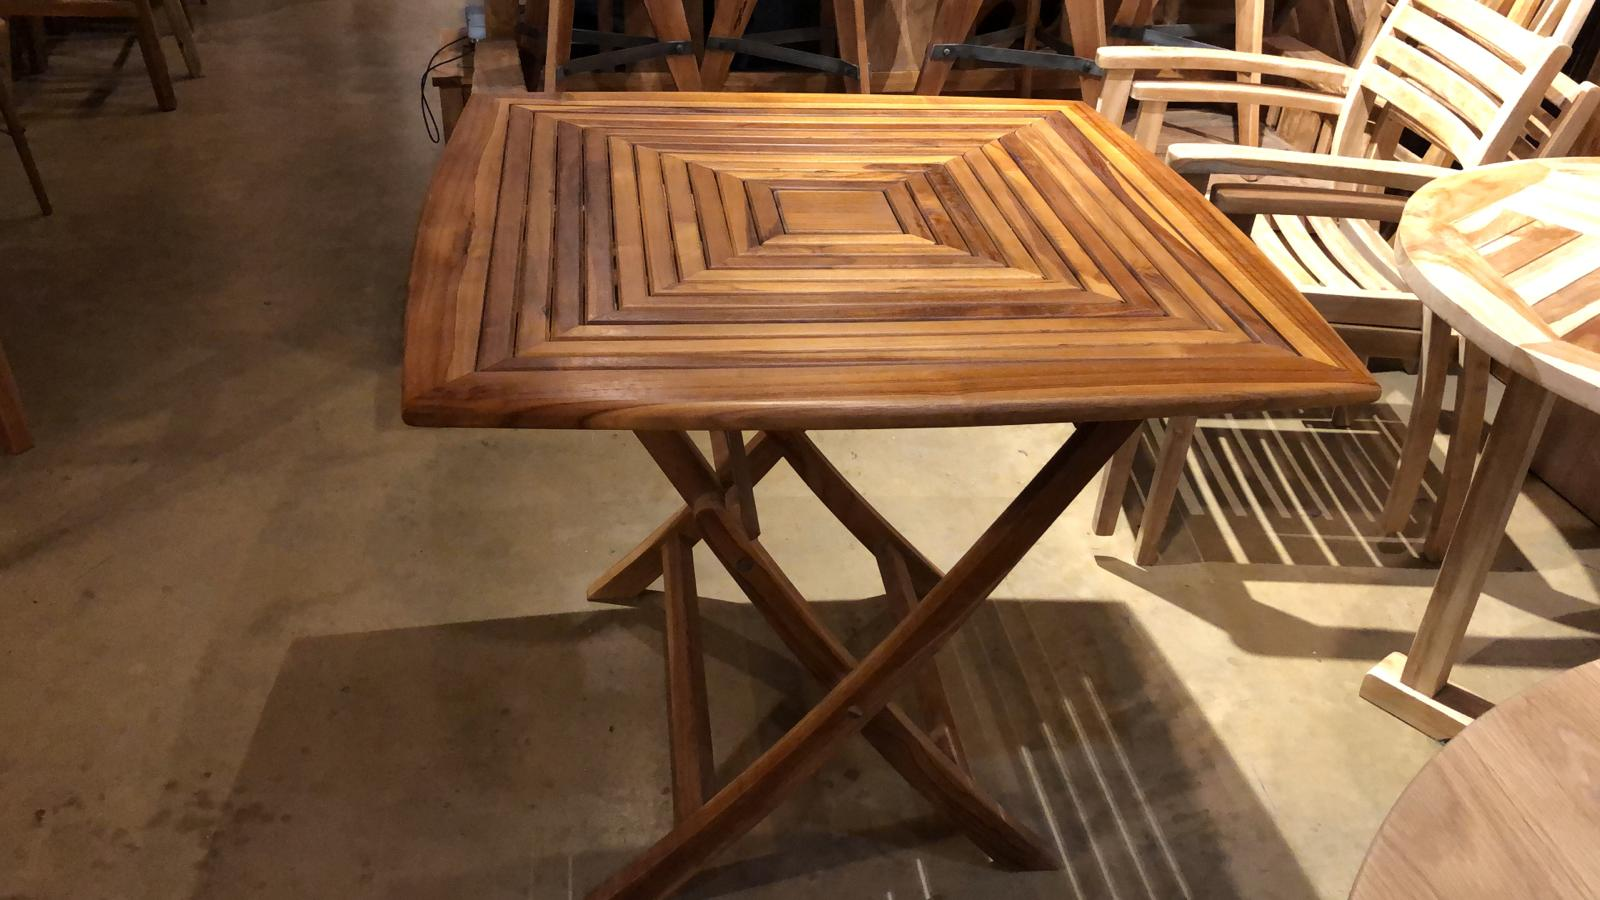 Teak Wood Folding Table for Garden and Patio 35